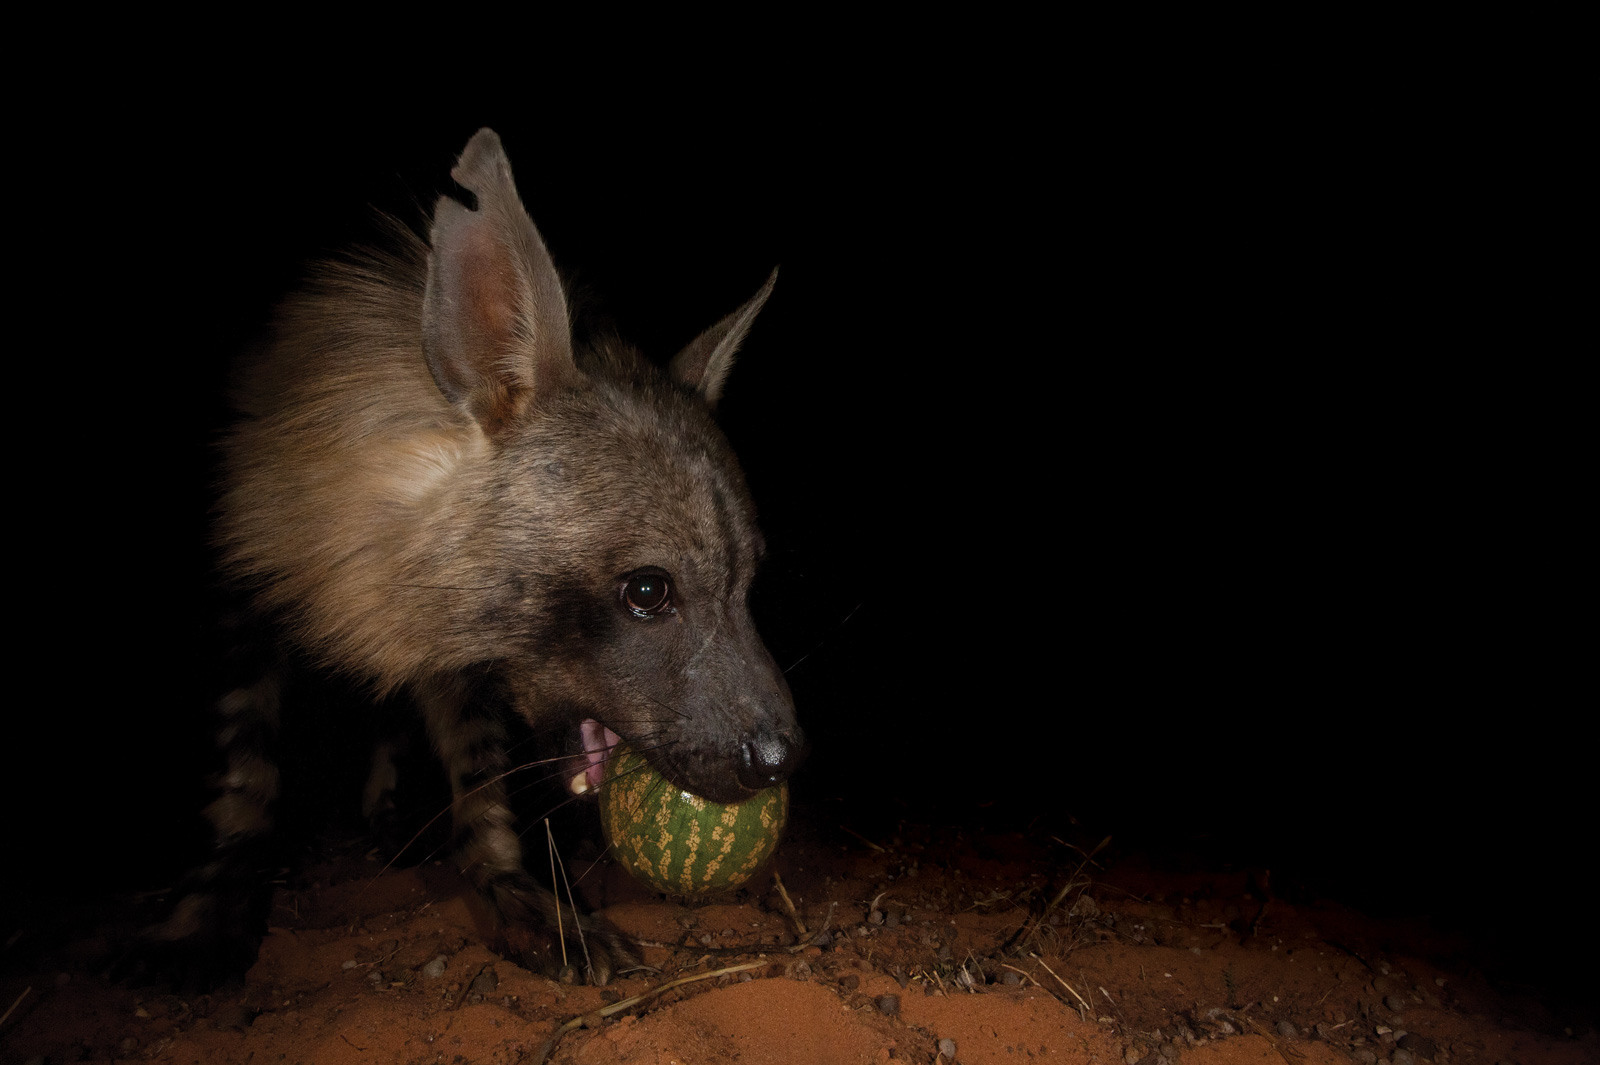 Hannes-Lochner-Kalahari-brown-hyena-apple